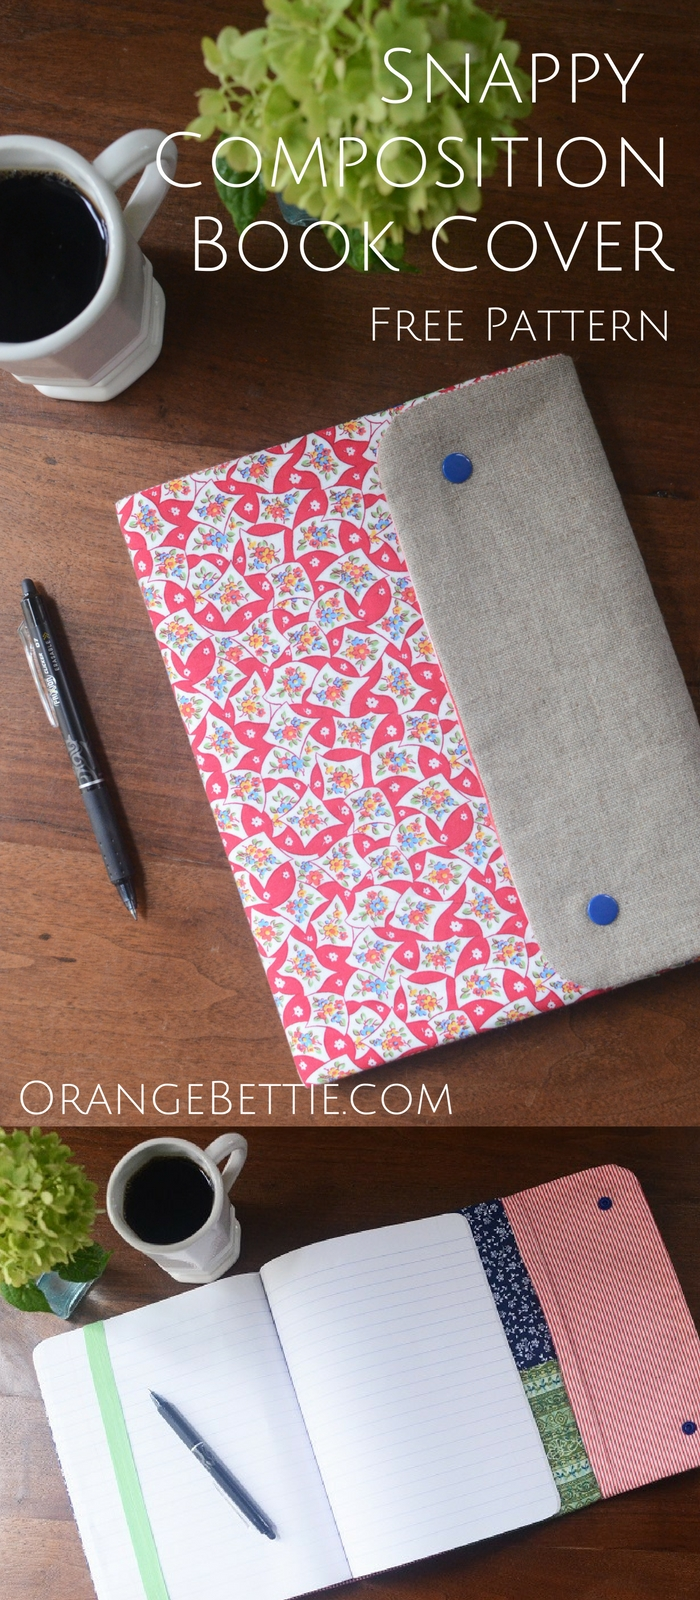 Fabric Book Covers Make Your Own : Snappy composition book cover free pattern orange bettie